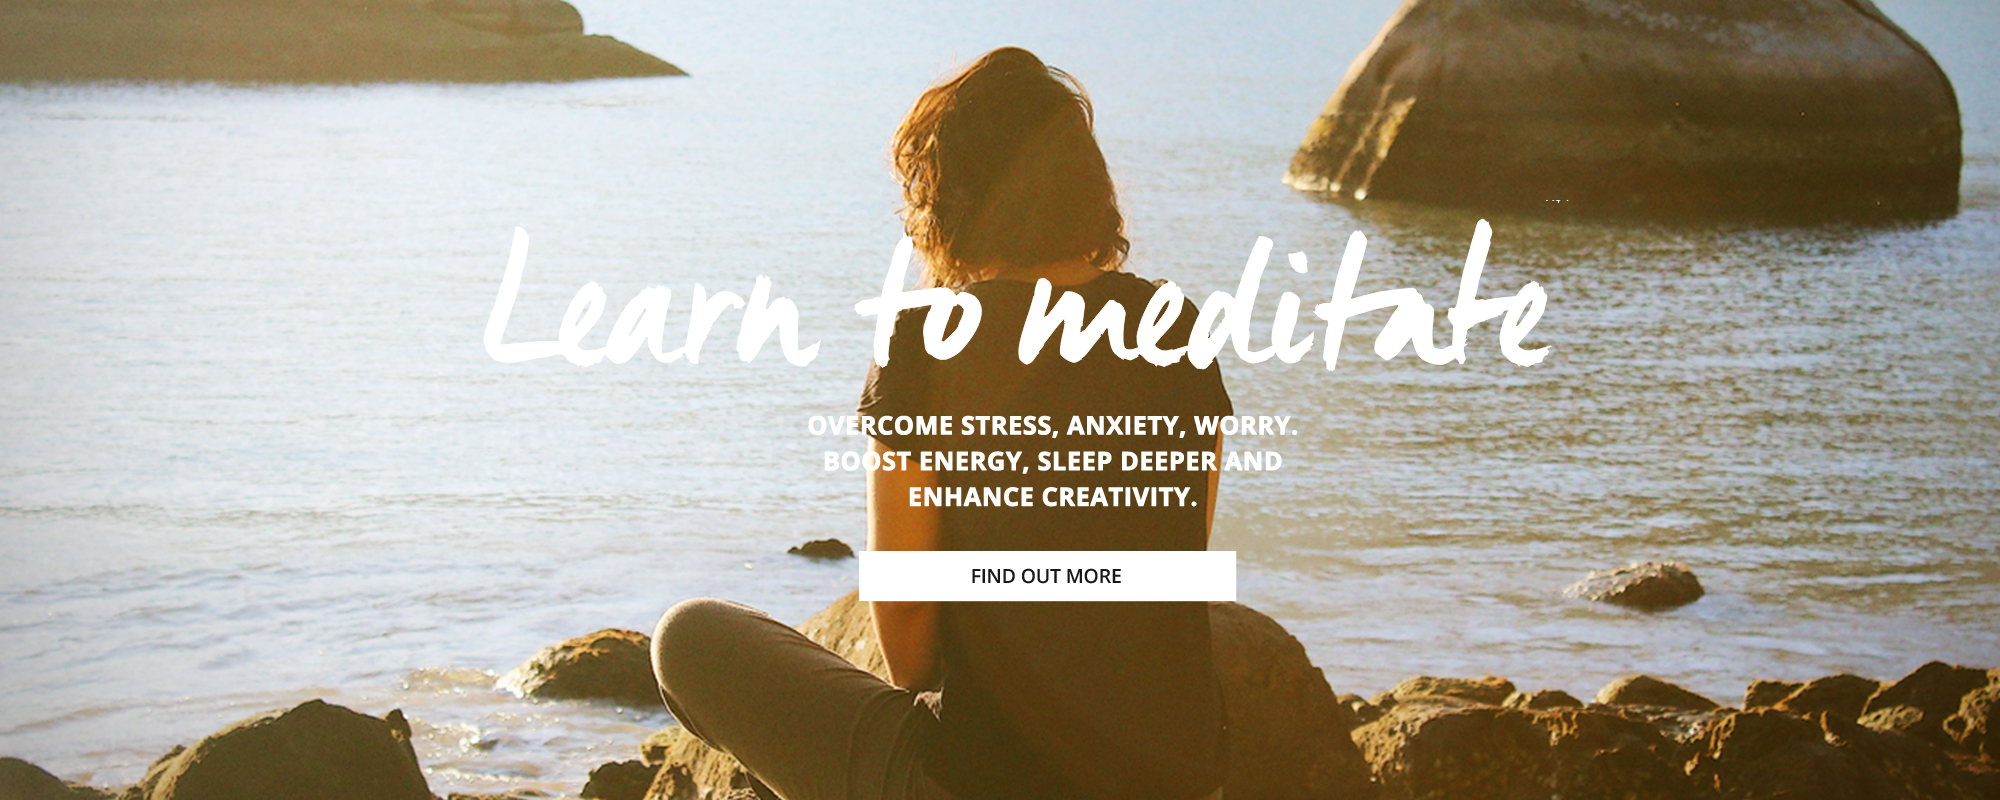 Veda Wellness Success Without Stress